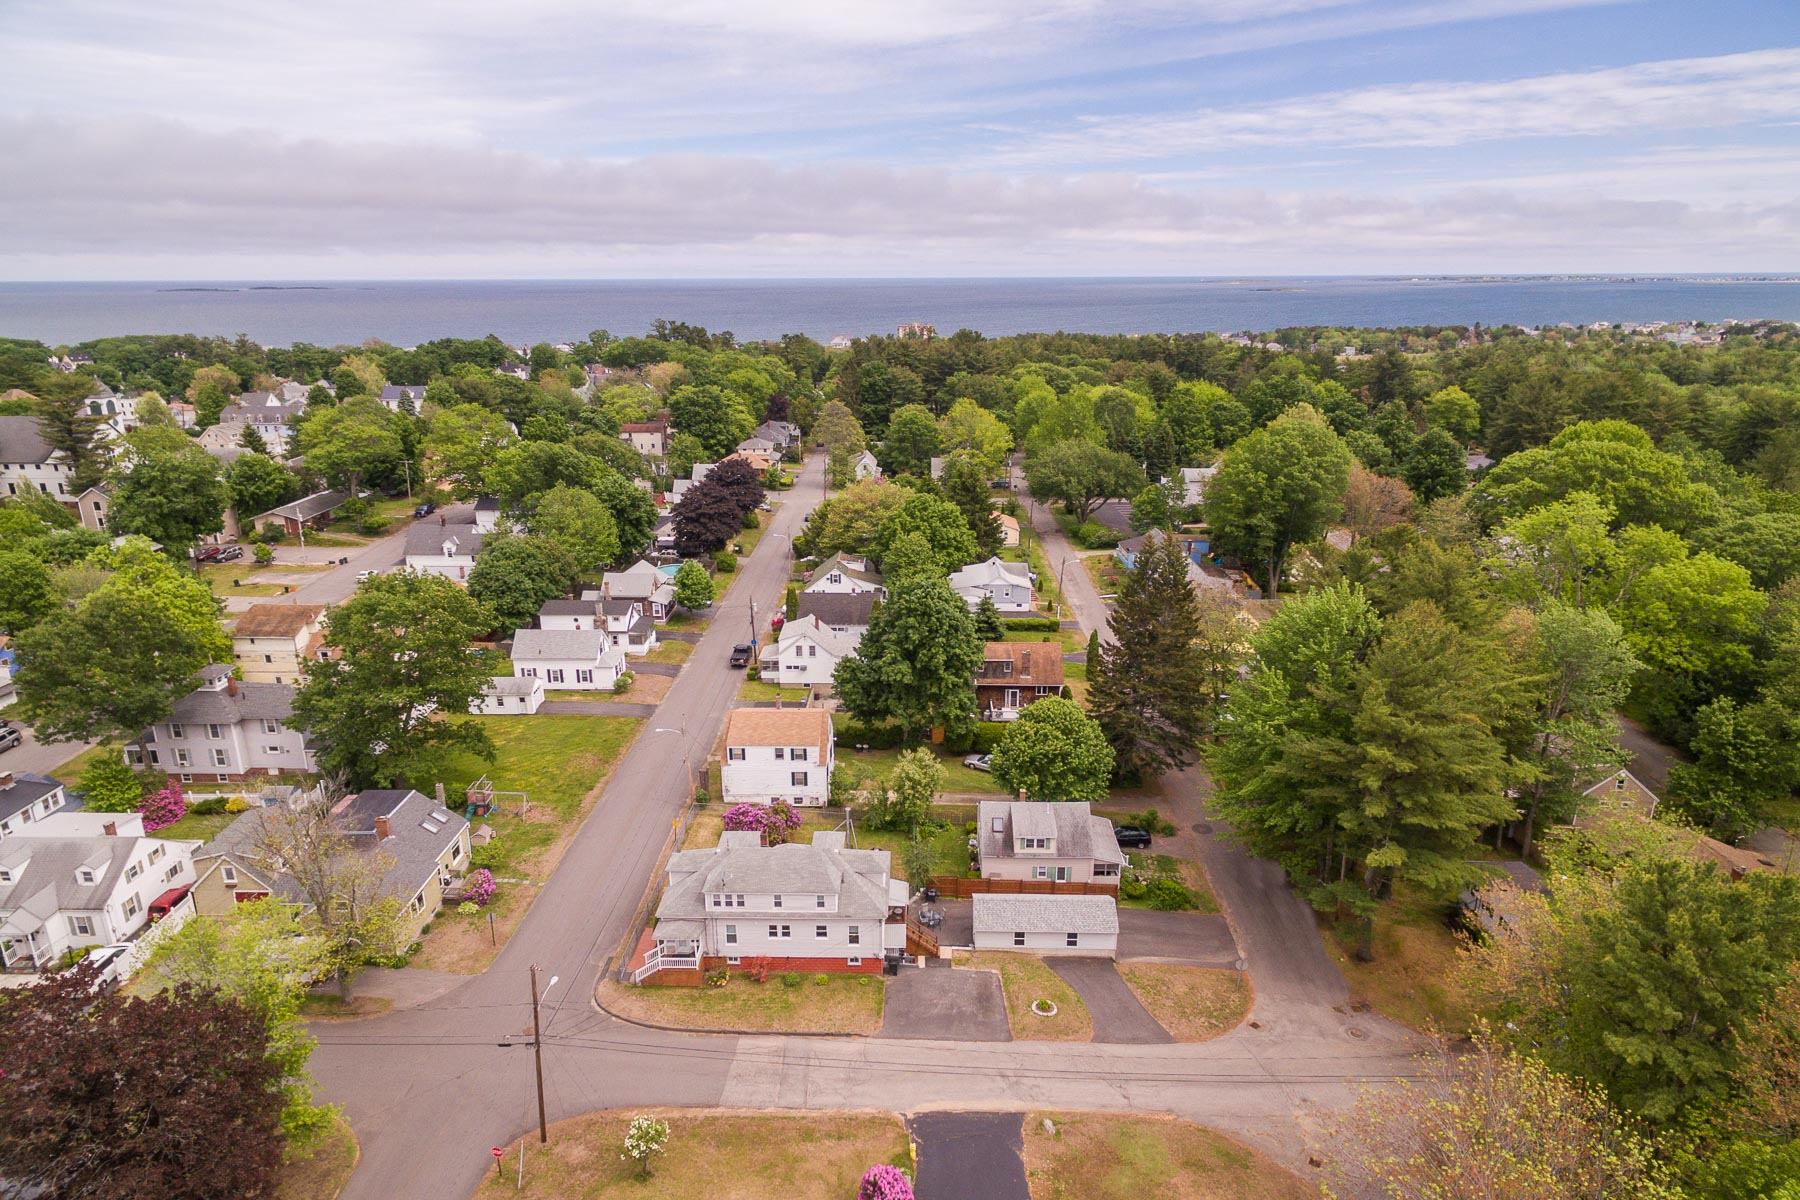 Single Family Home for Sale at 87 Seaview Avenue Old Orchard Beach, Maine 04064 United States